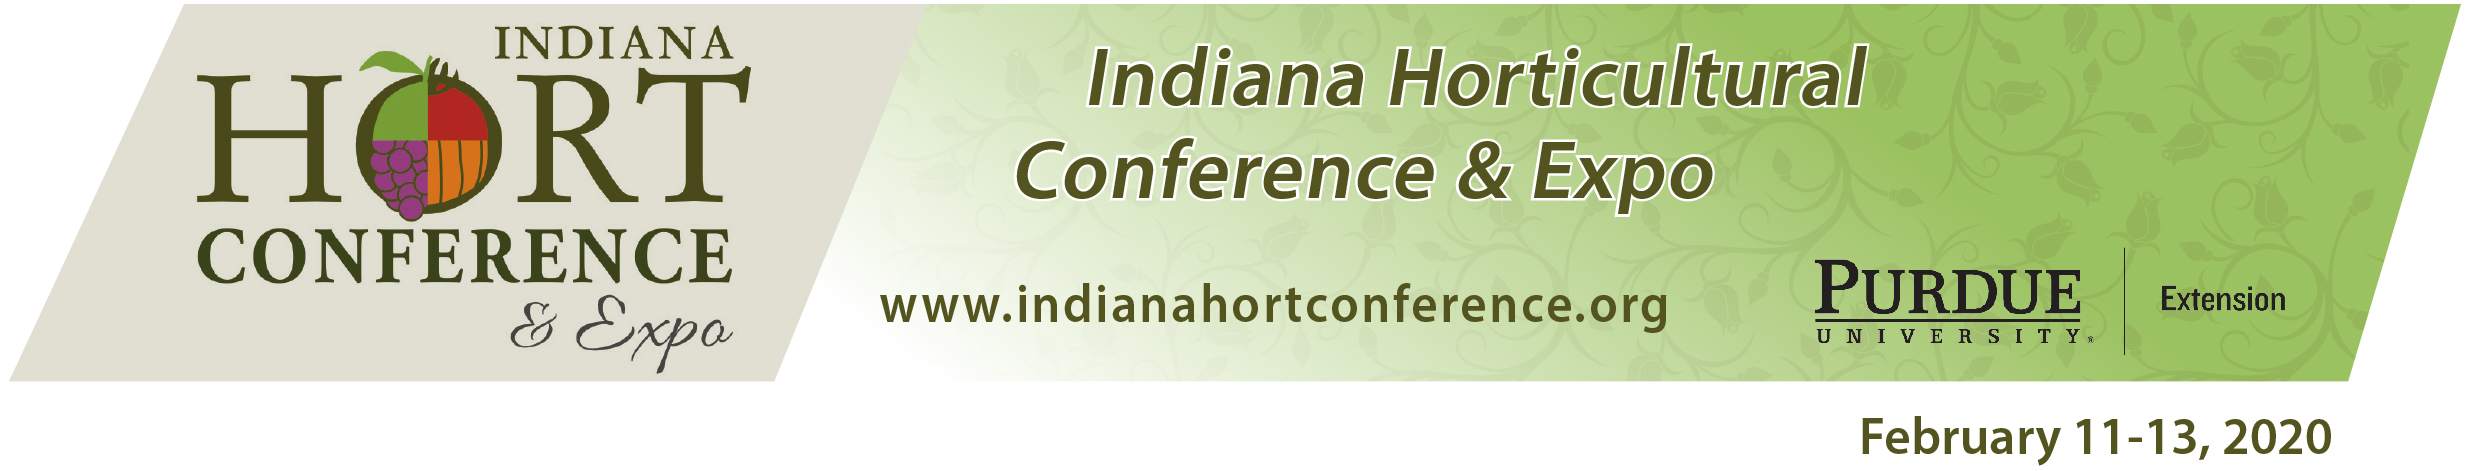 Indiana Horticultural Conference & Expo